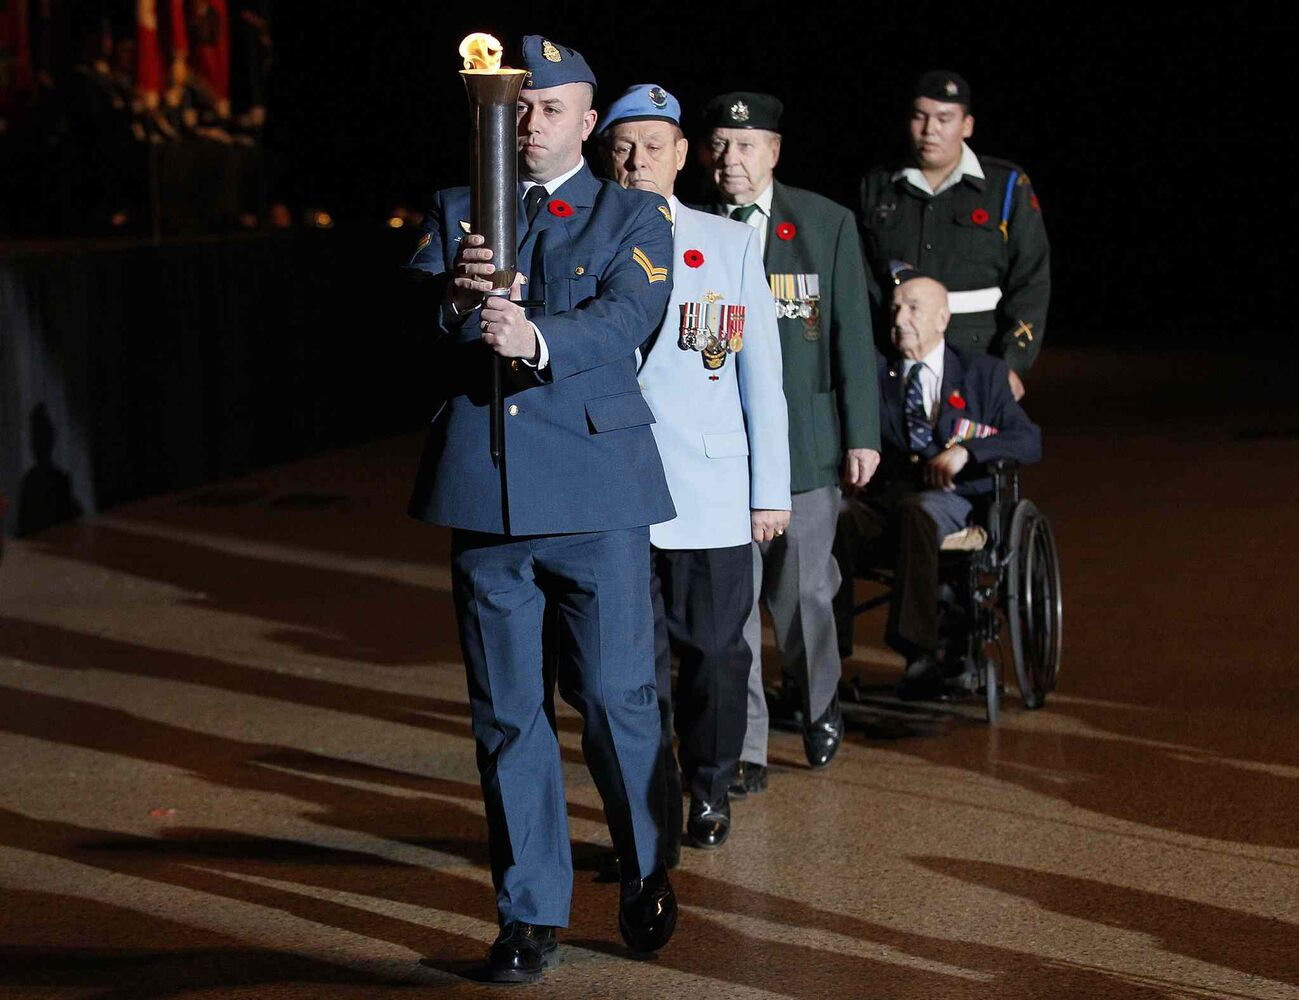 The Passing the Torch ceremony is performed during the Remembrance Day service at the RBC Convention Centre Winnipeg. (CP)